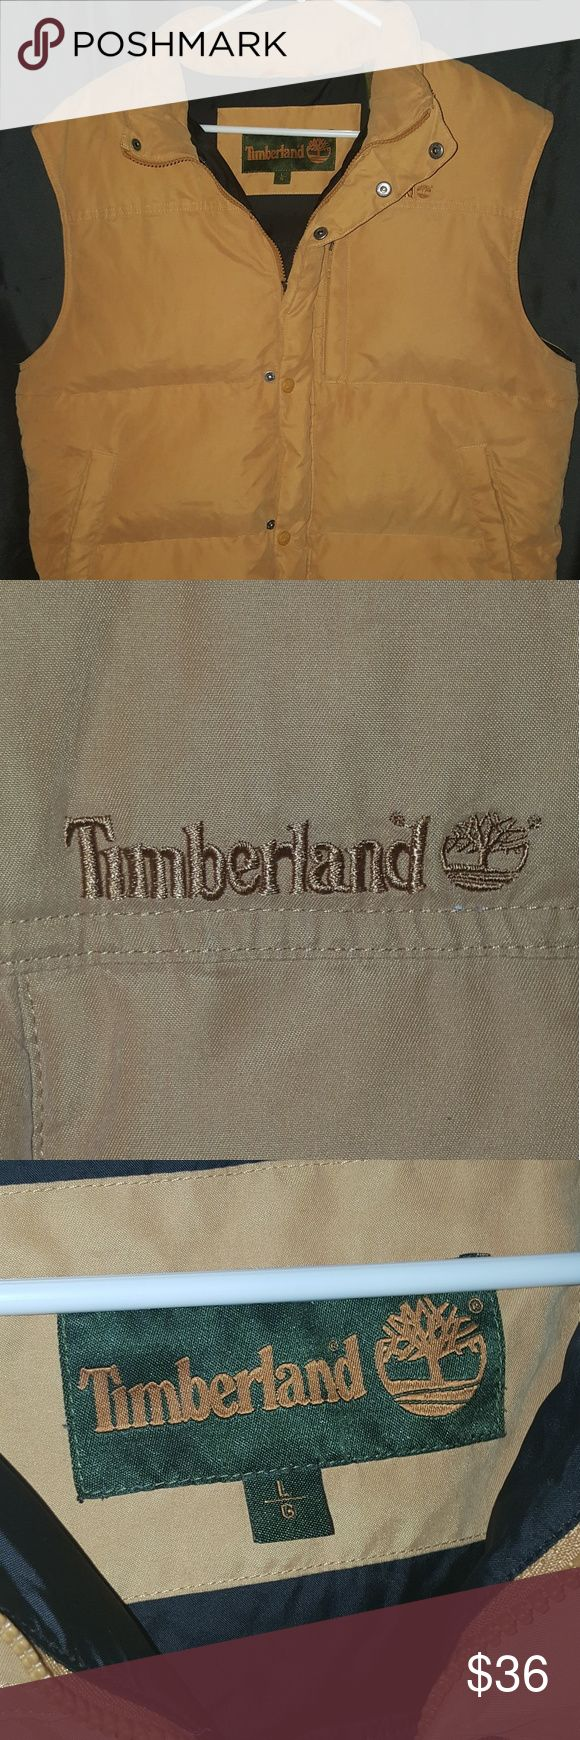 Timberland Puff Vest Mens Large Warm and soft Timberland puff vest with zippers and buttons. Great quality. Fast shipping. Timberland Jackets & Coats Vests